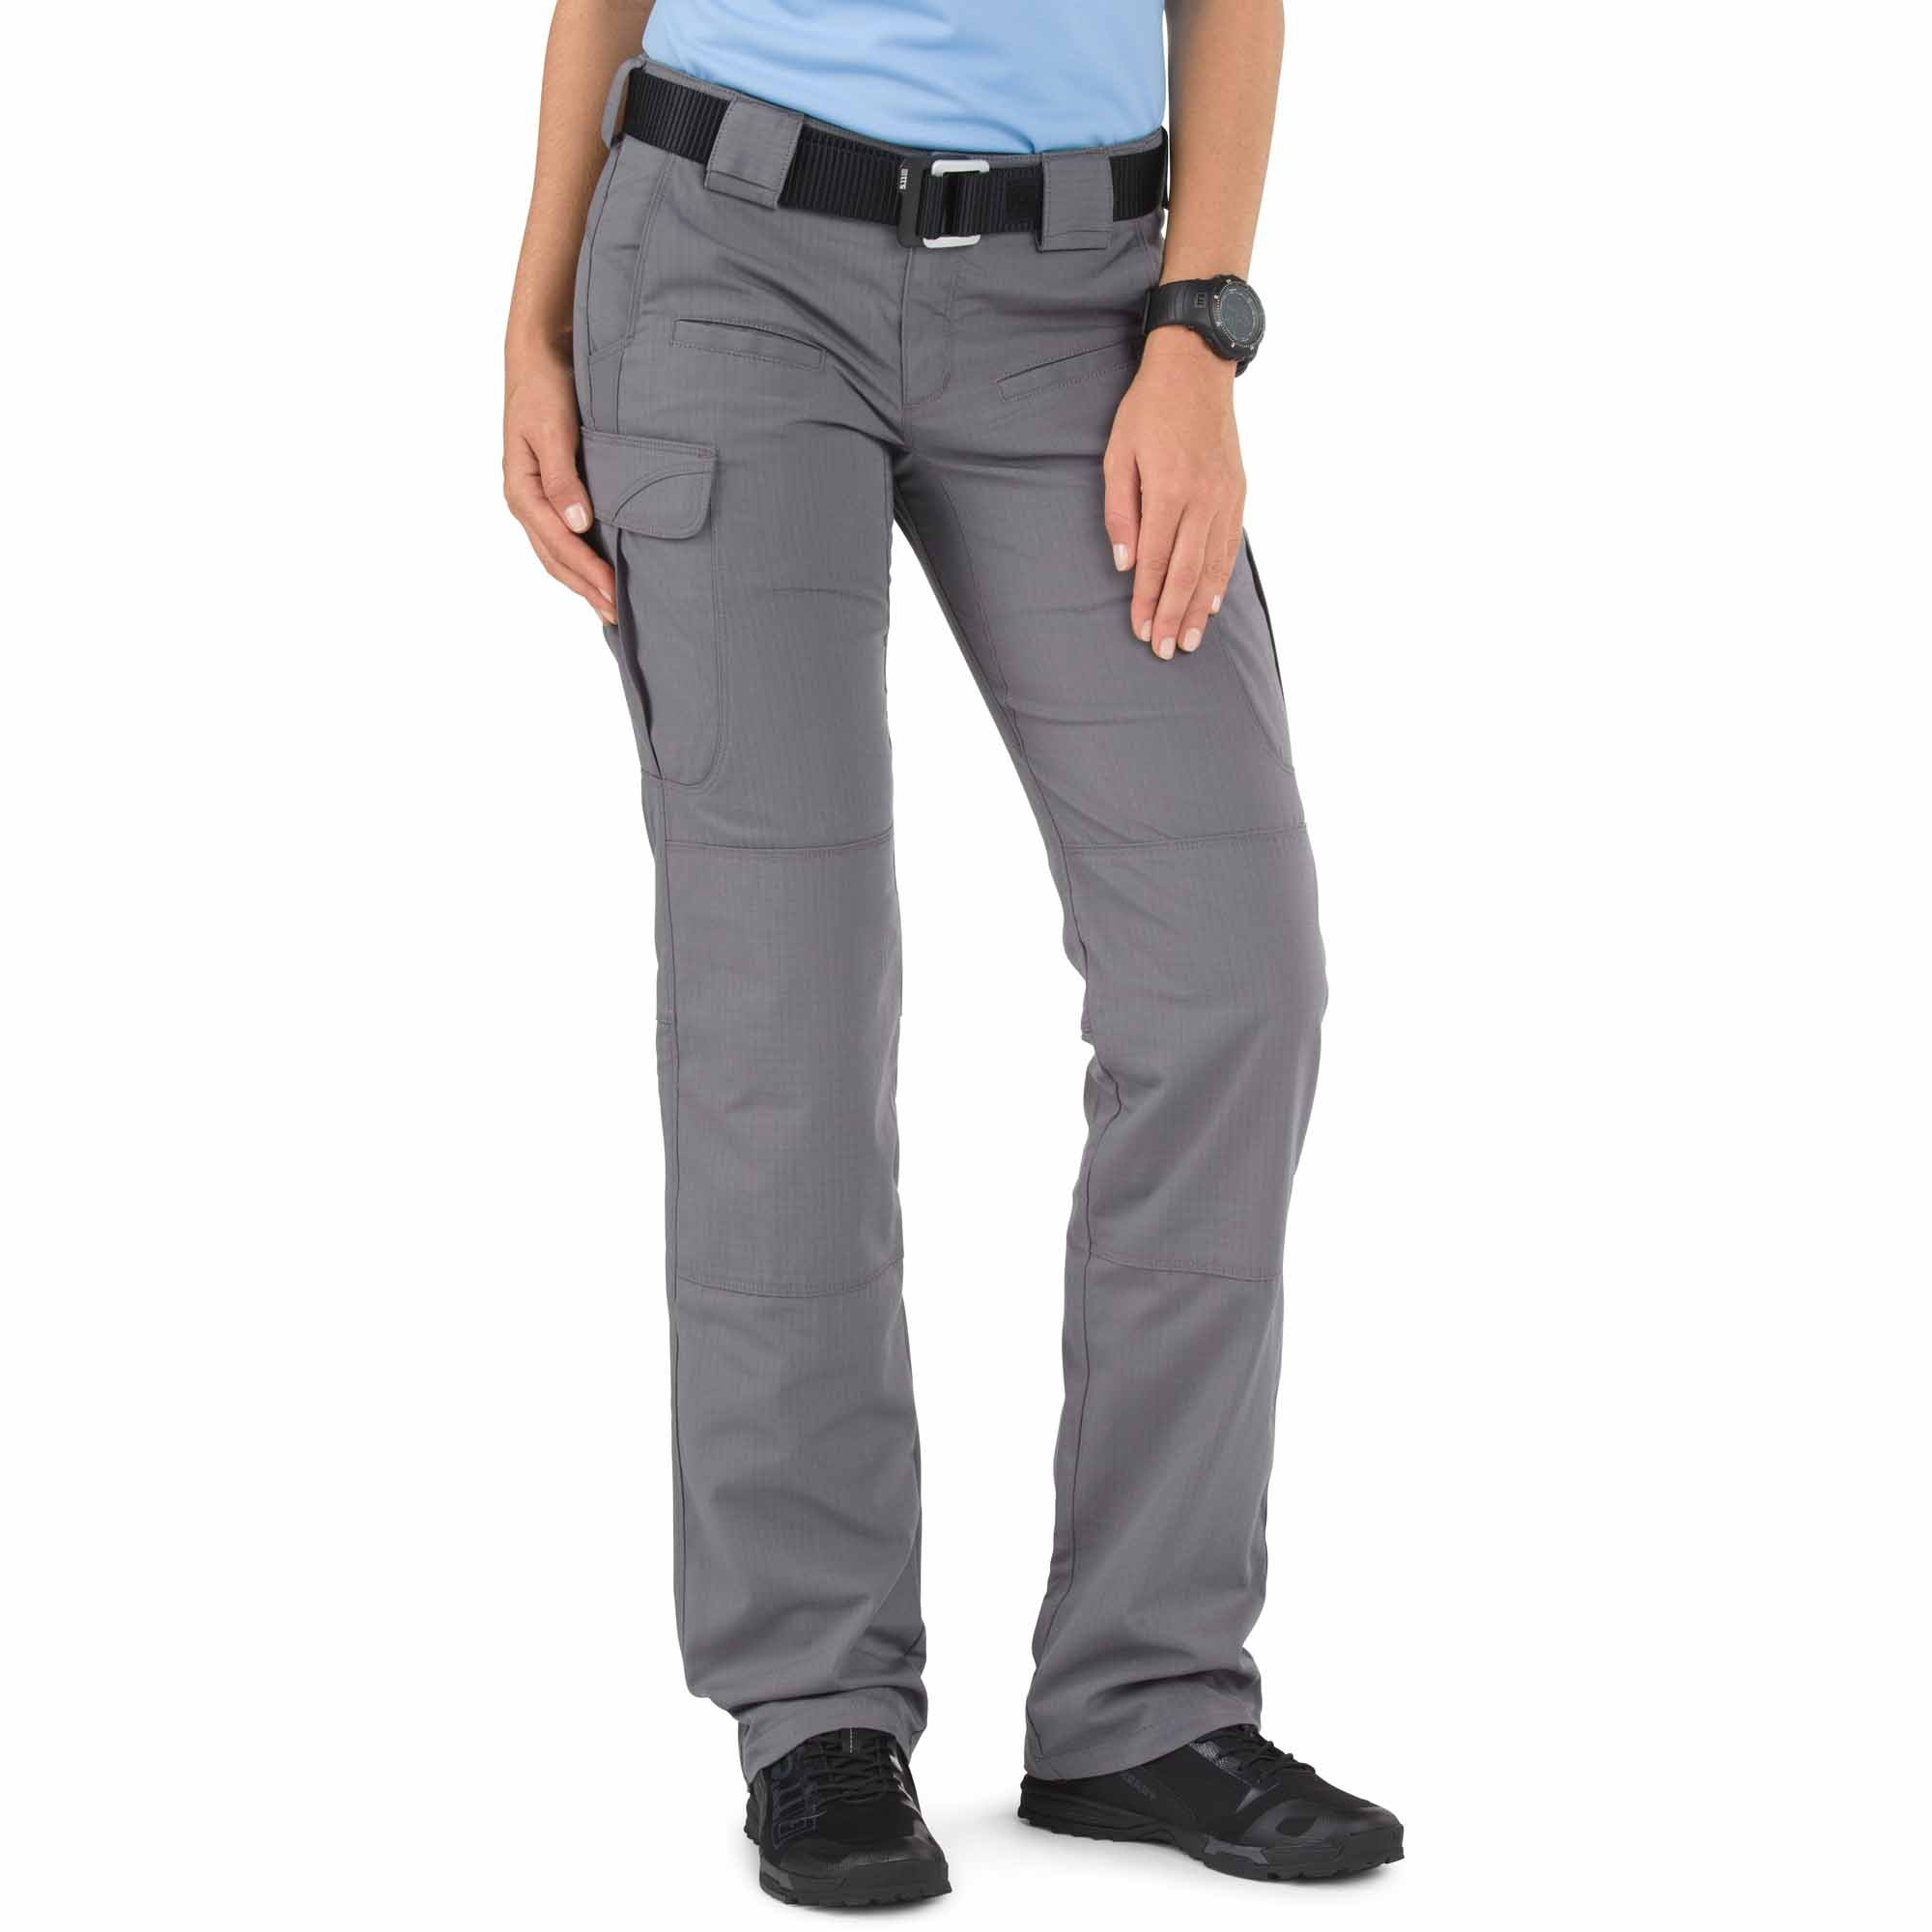 5.11 Tactical Women's Stryke Pant, Storm, 2 R by 5.11